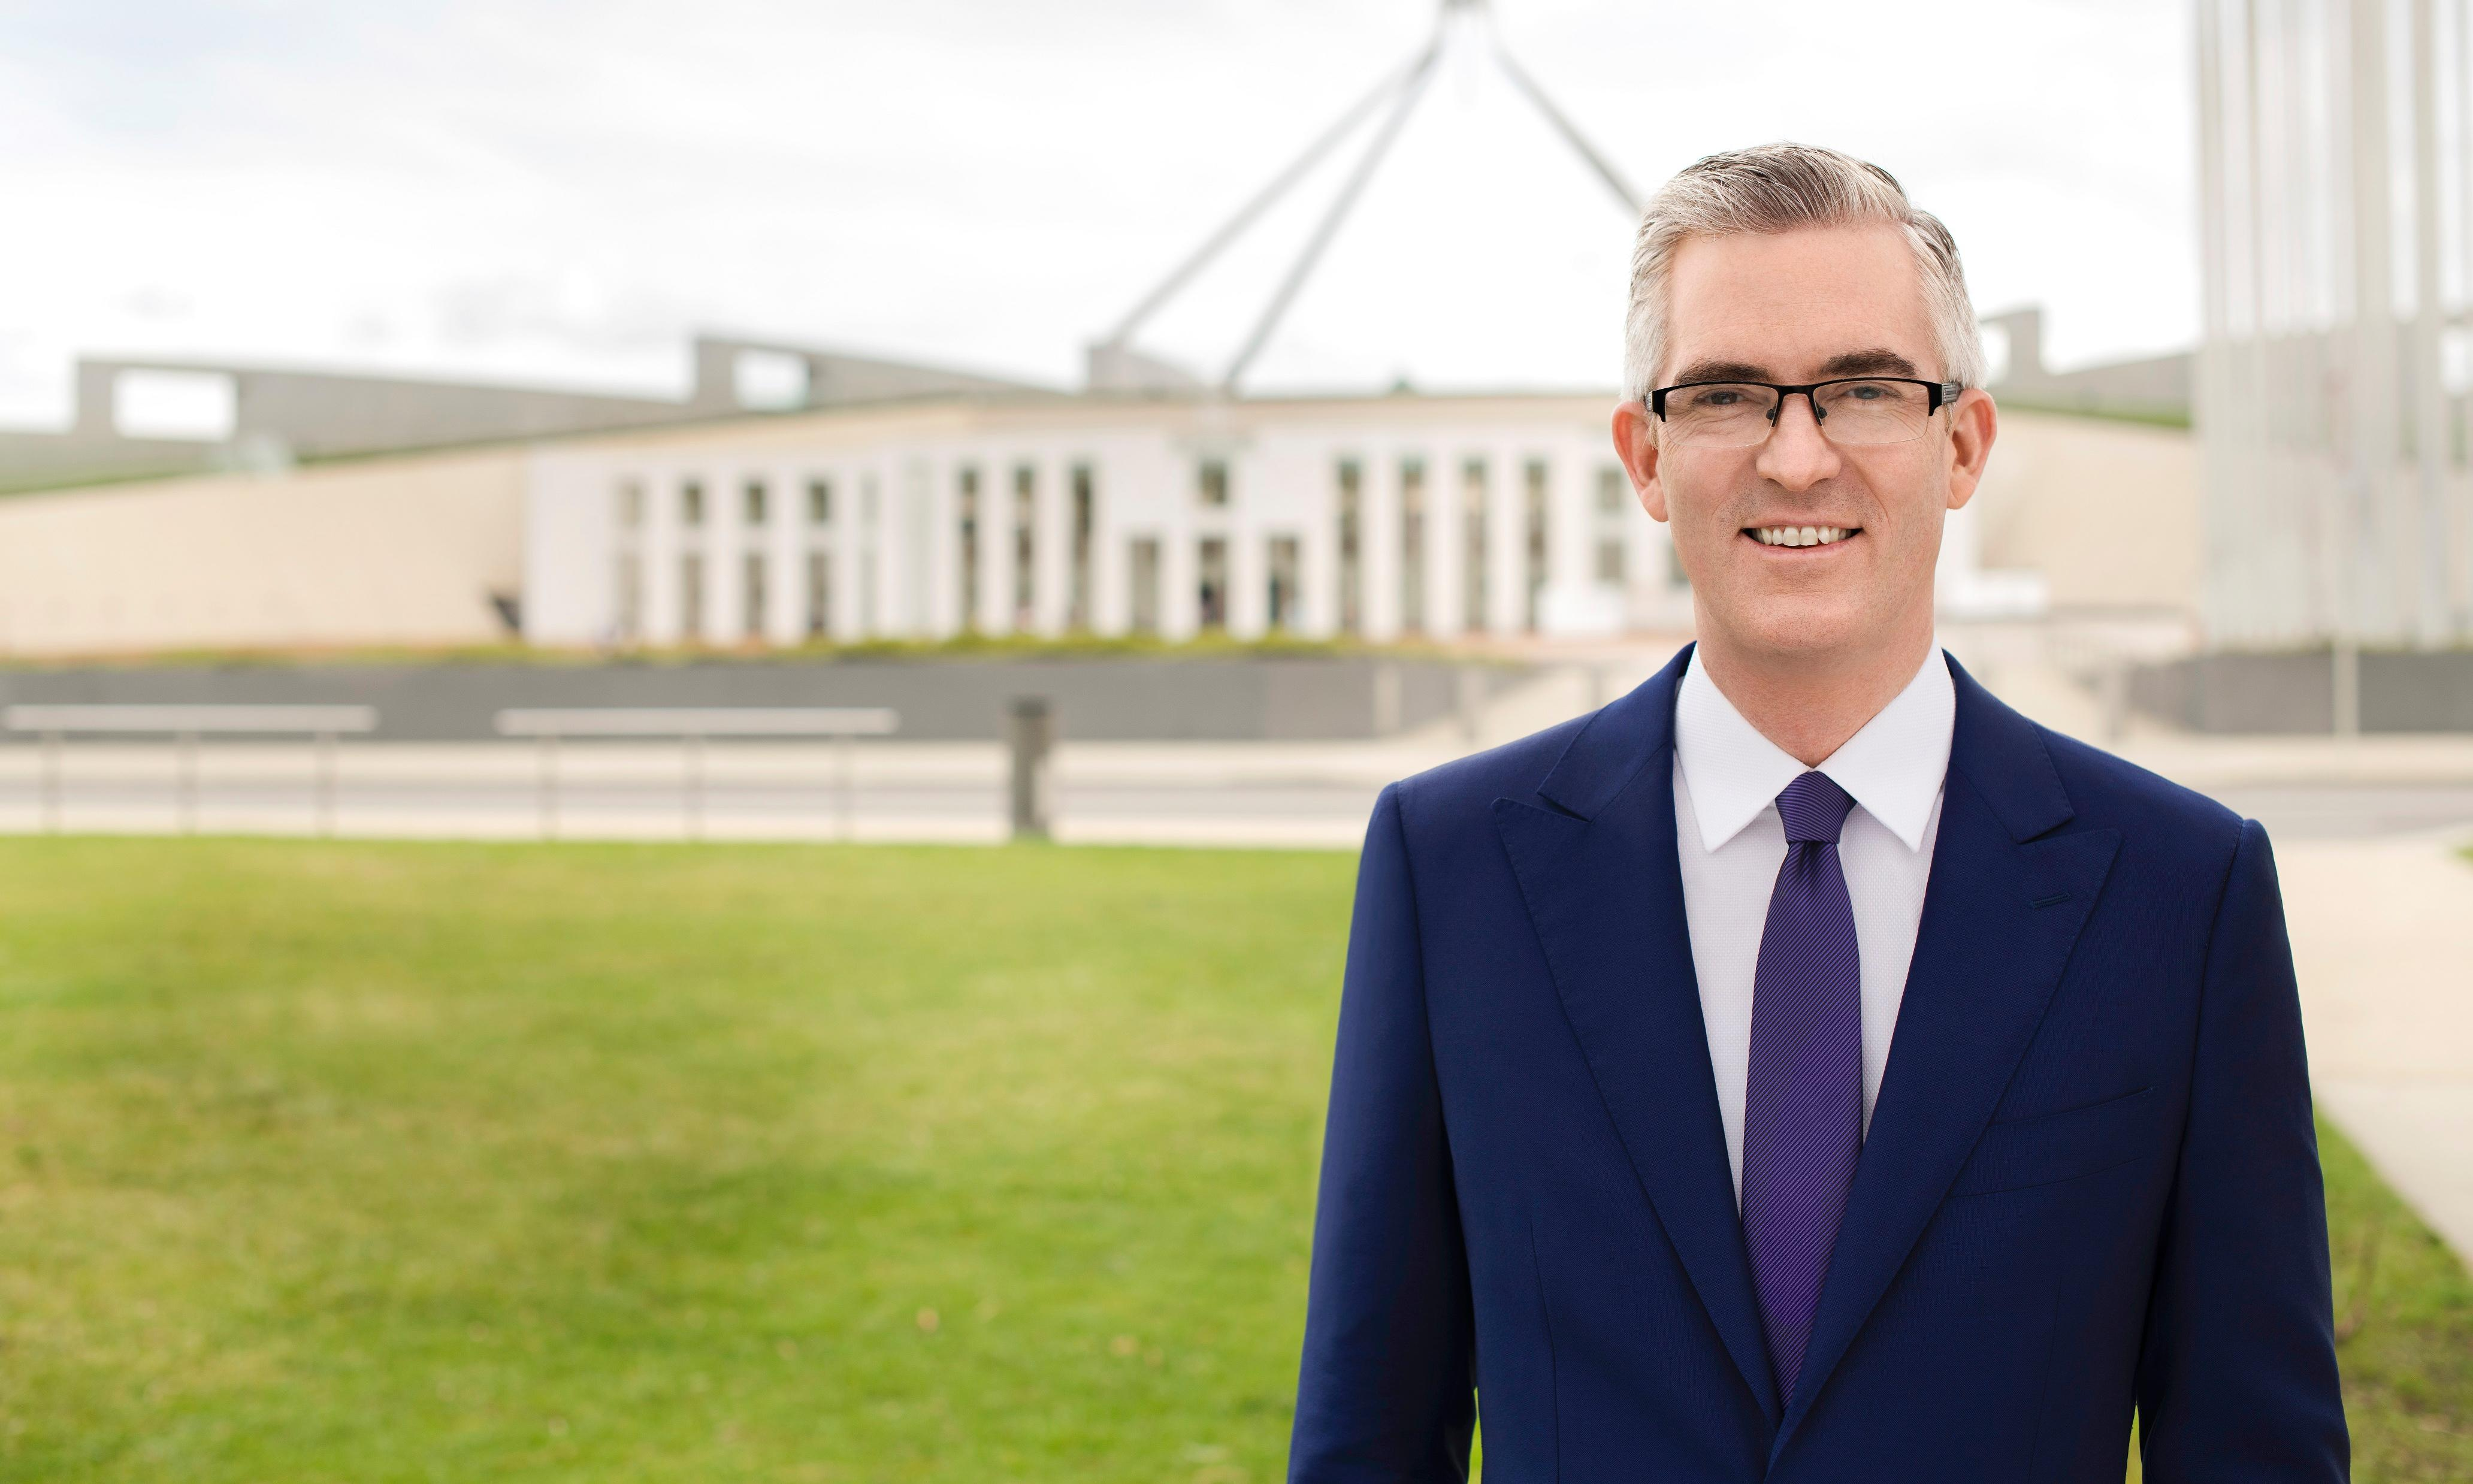 Sky's David Speers set to take over as ABC Insiders host